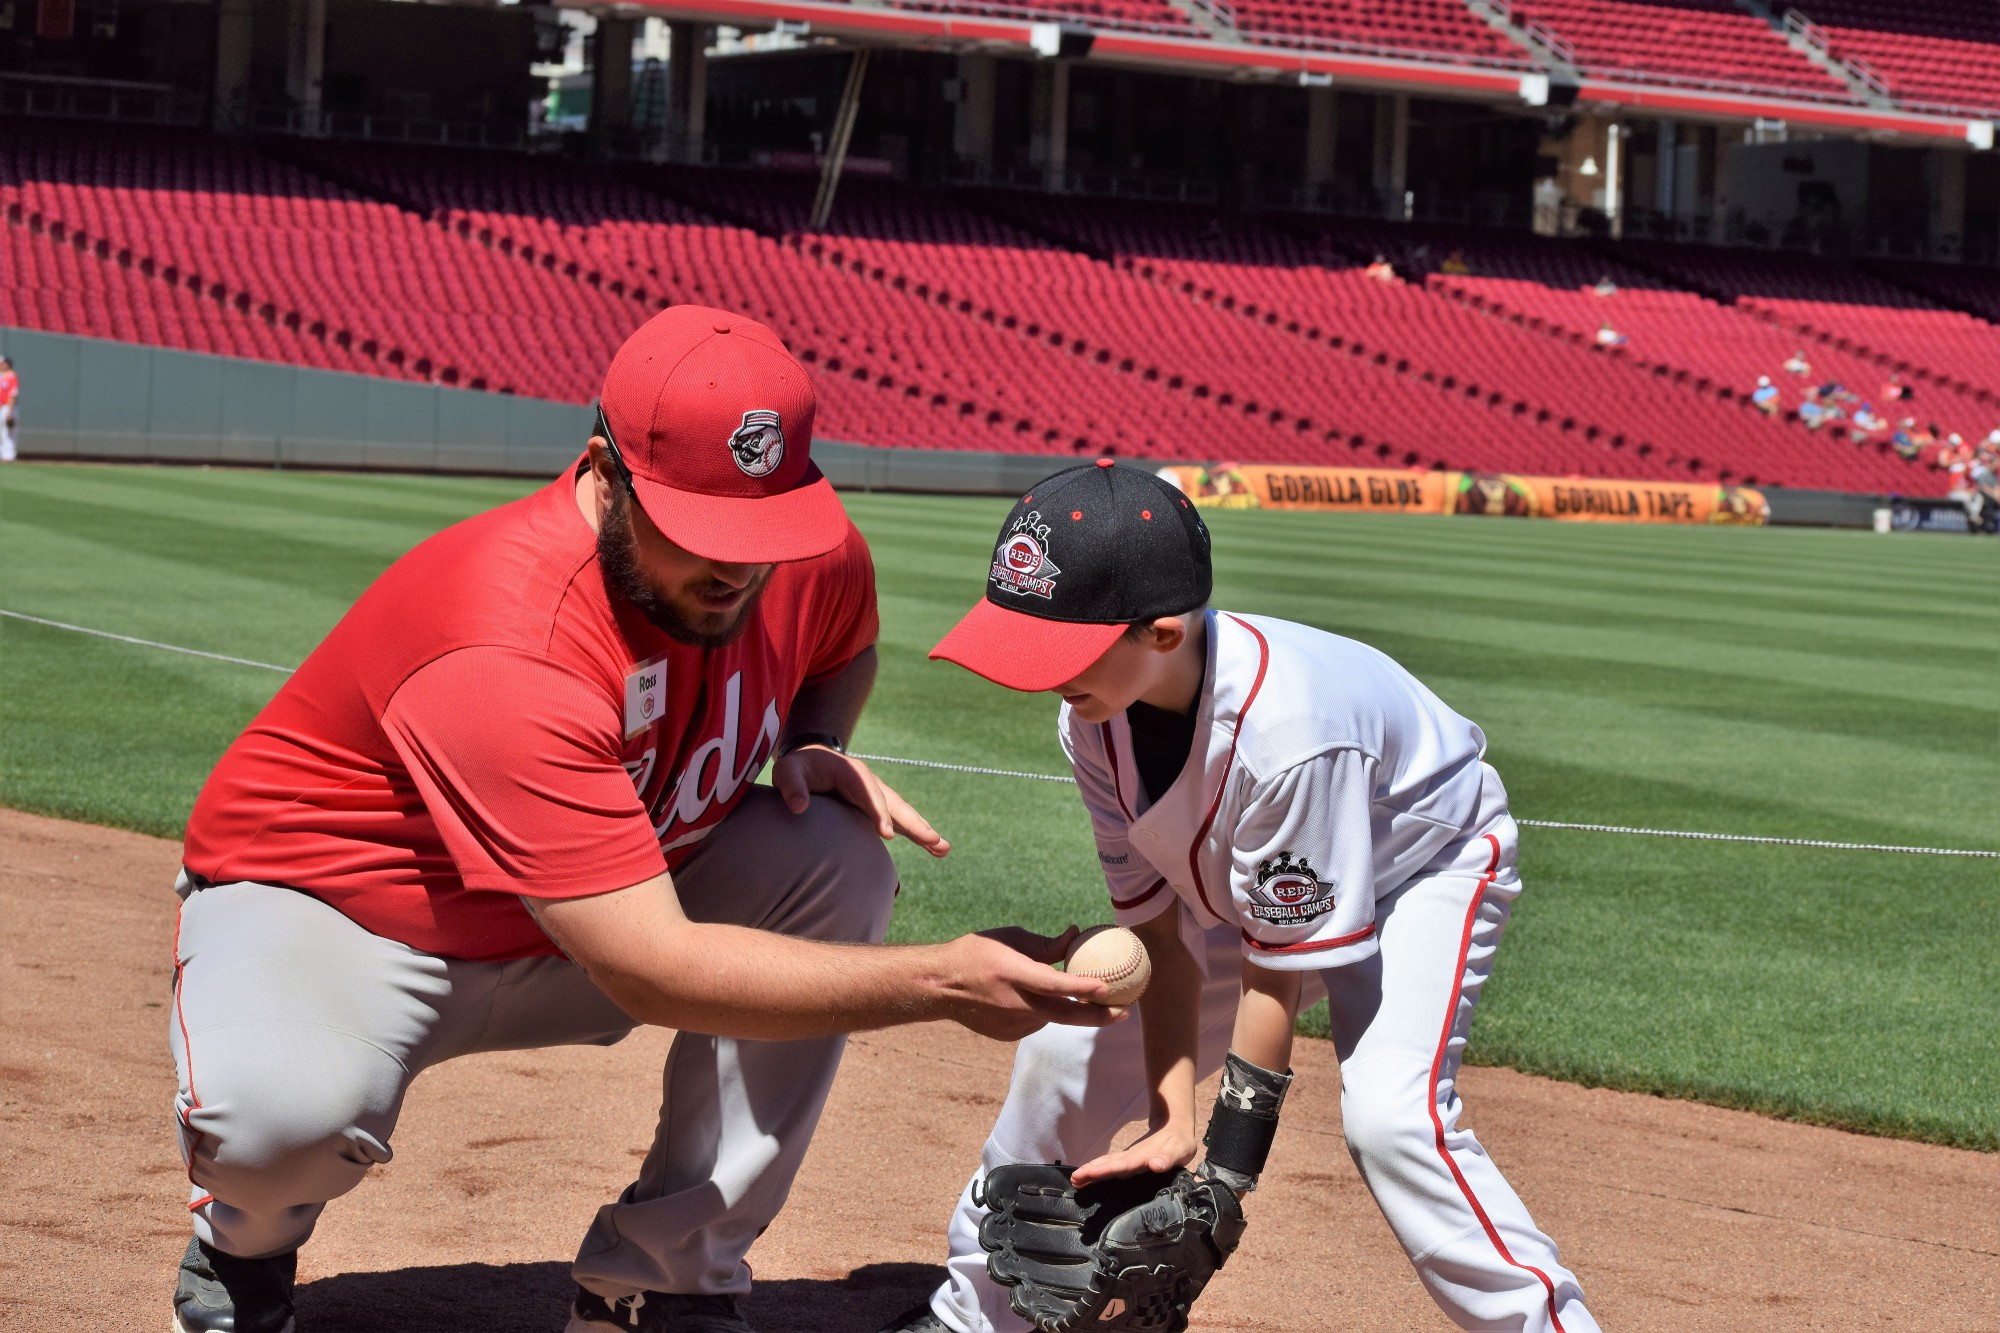 For more info on Reds Baseball Camps please visit Reds Camps